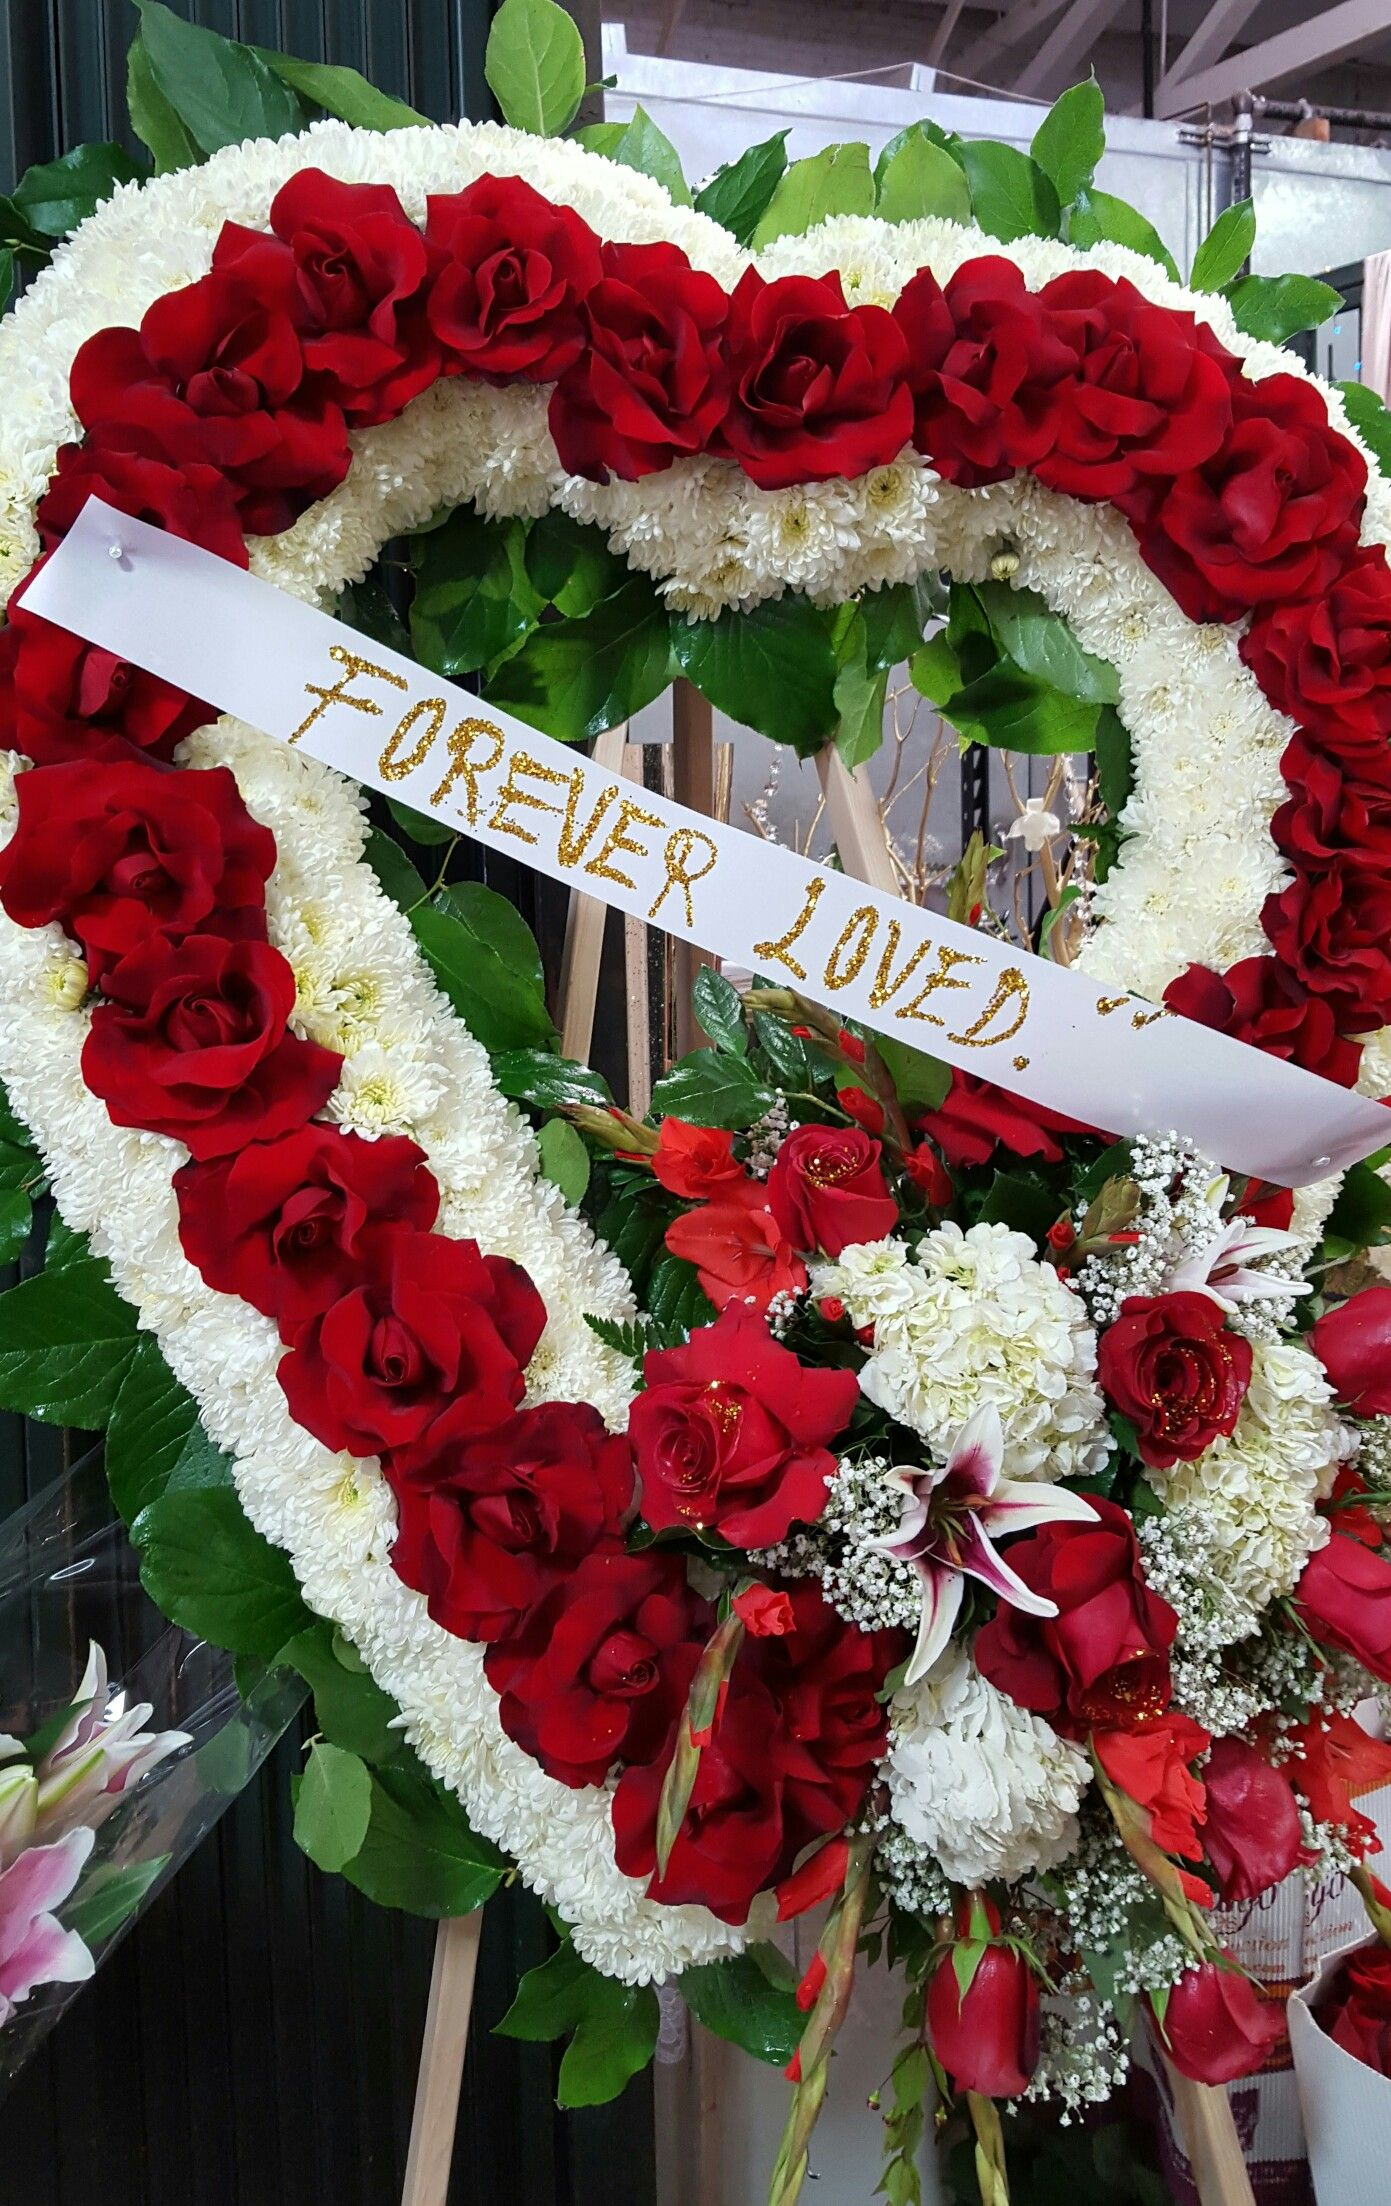 Heart shaped funeral flowers are often given by the immediate family heart shaped funeral flowers are often given by the immediate family in many traditions check izmirmasajfo